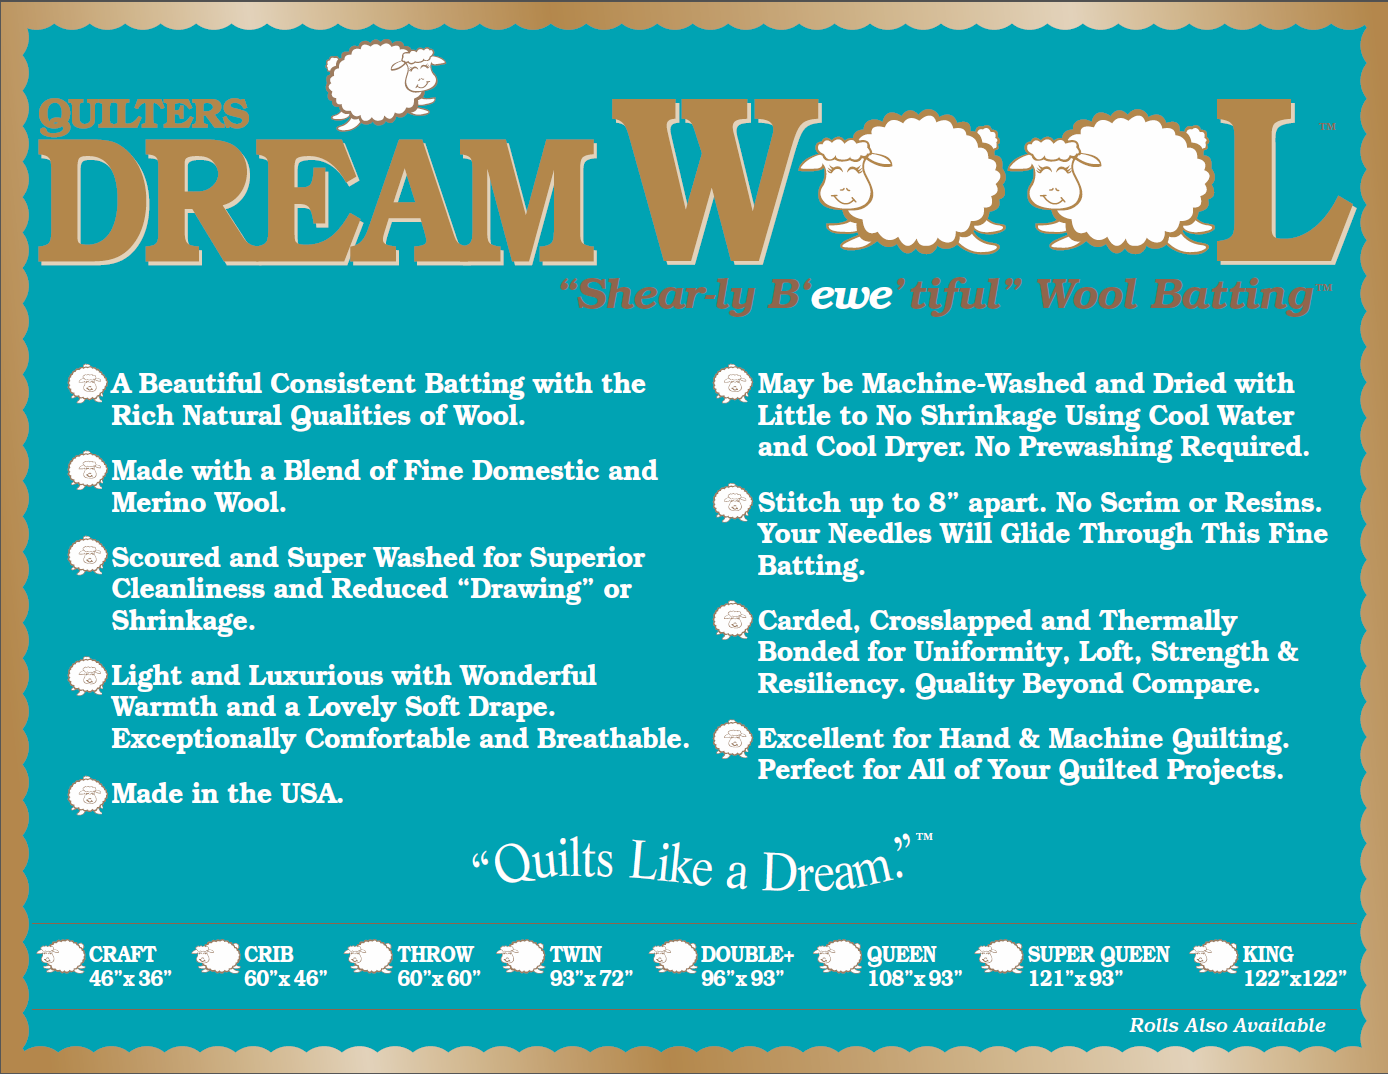 Quilters Dream Wool Double 96 x 93